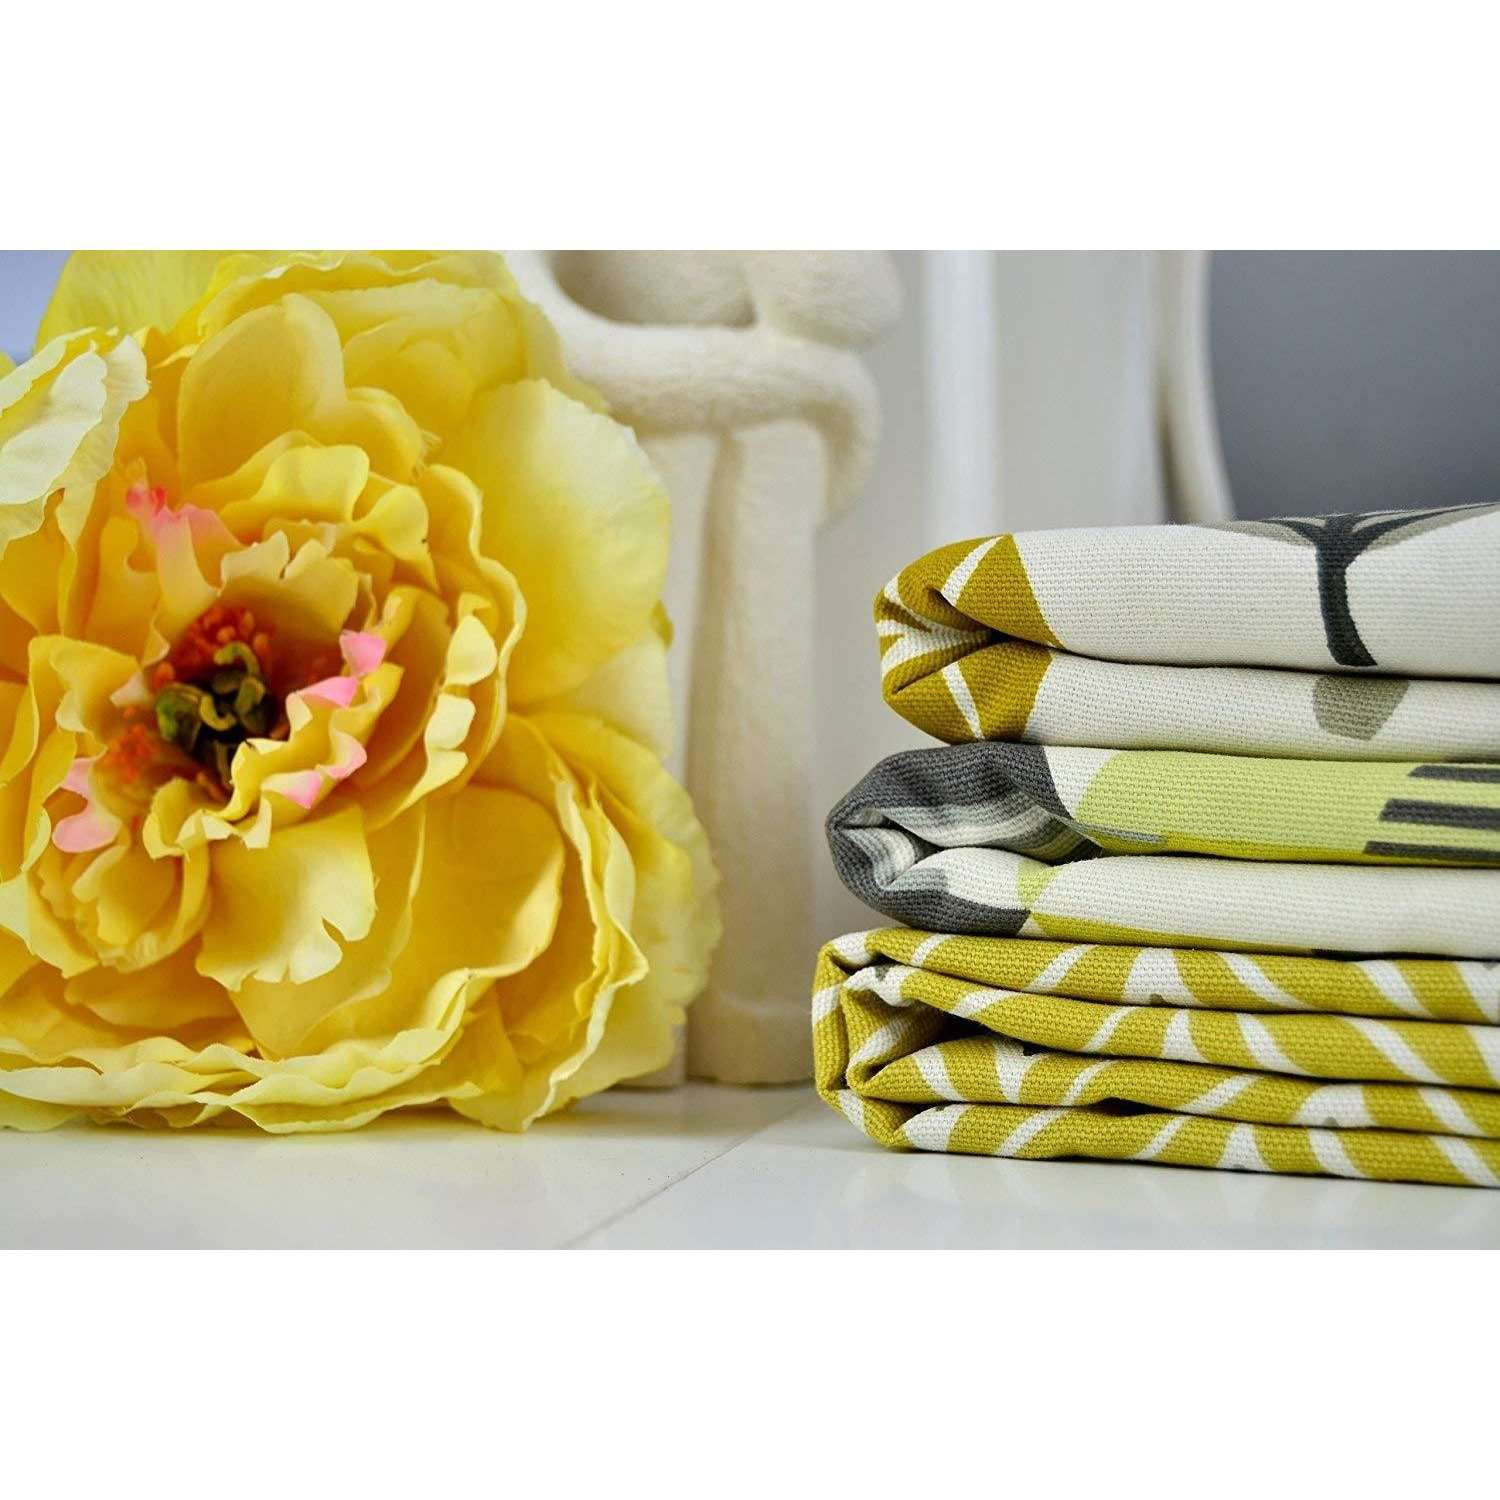 McAlister Textiles Geometric Ochre Yellow 43cm x 43cm Cushion Set of 3 Cushions and Covers